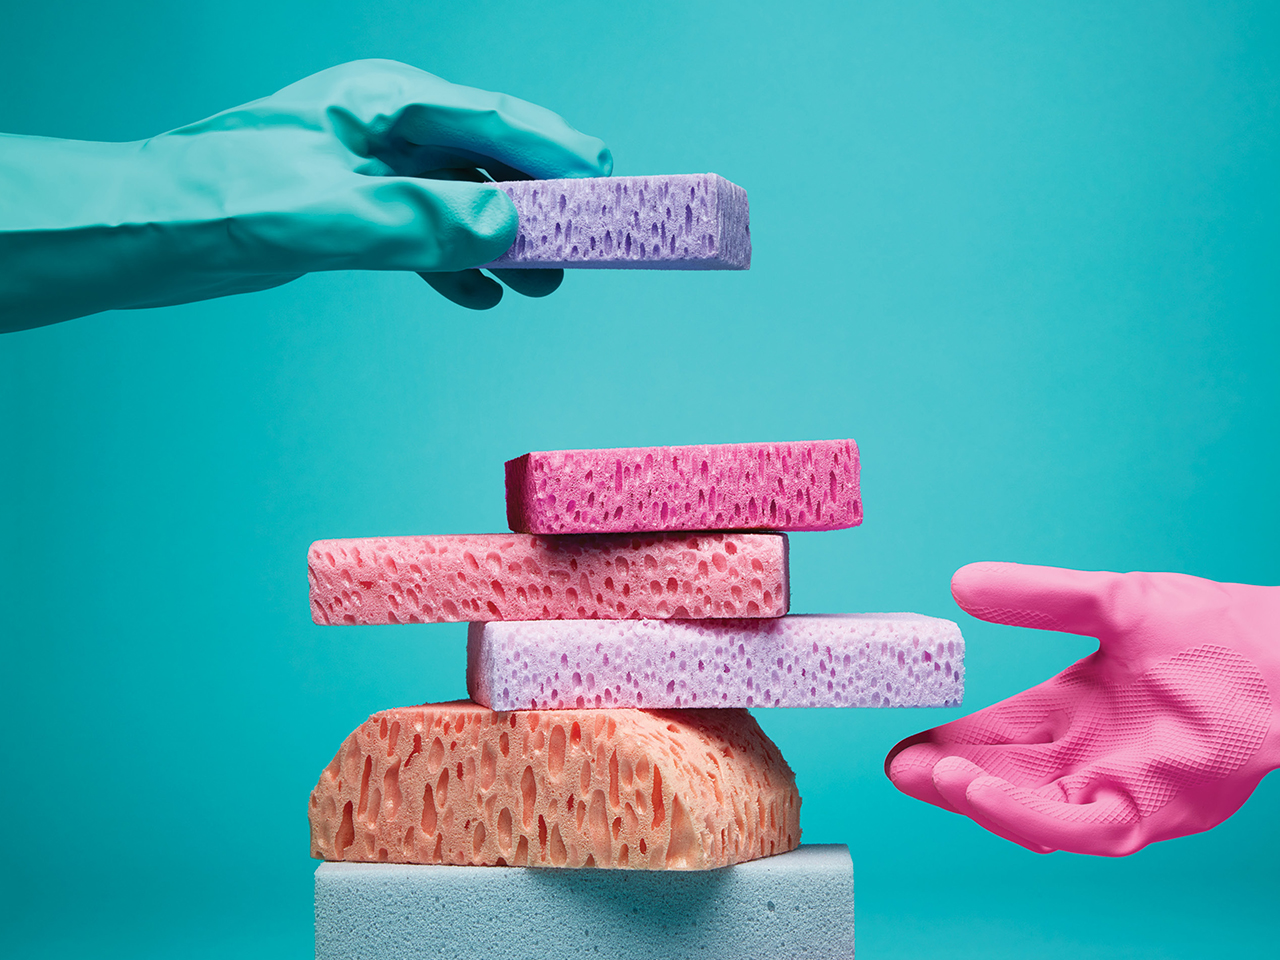 A blue dishwashing glove places a purple sponge on top of a stack of various pink sponges. A pink dishwashing glove is hovering near the bottom of the sponge tower.